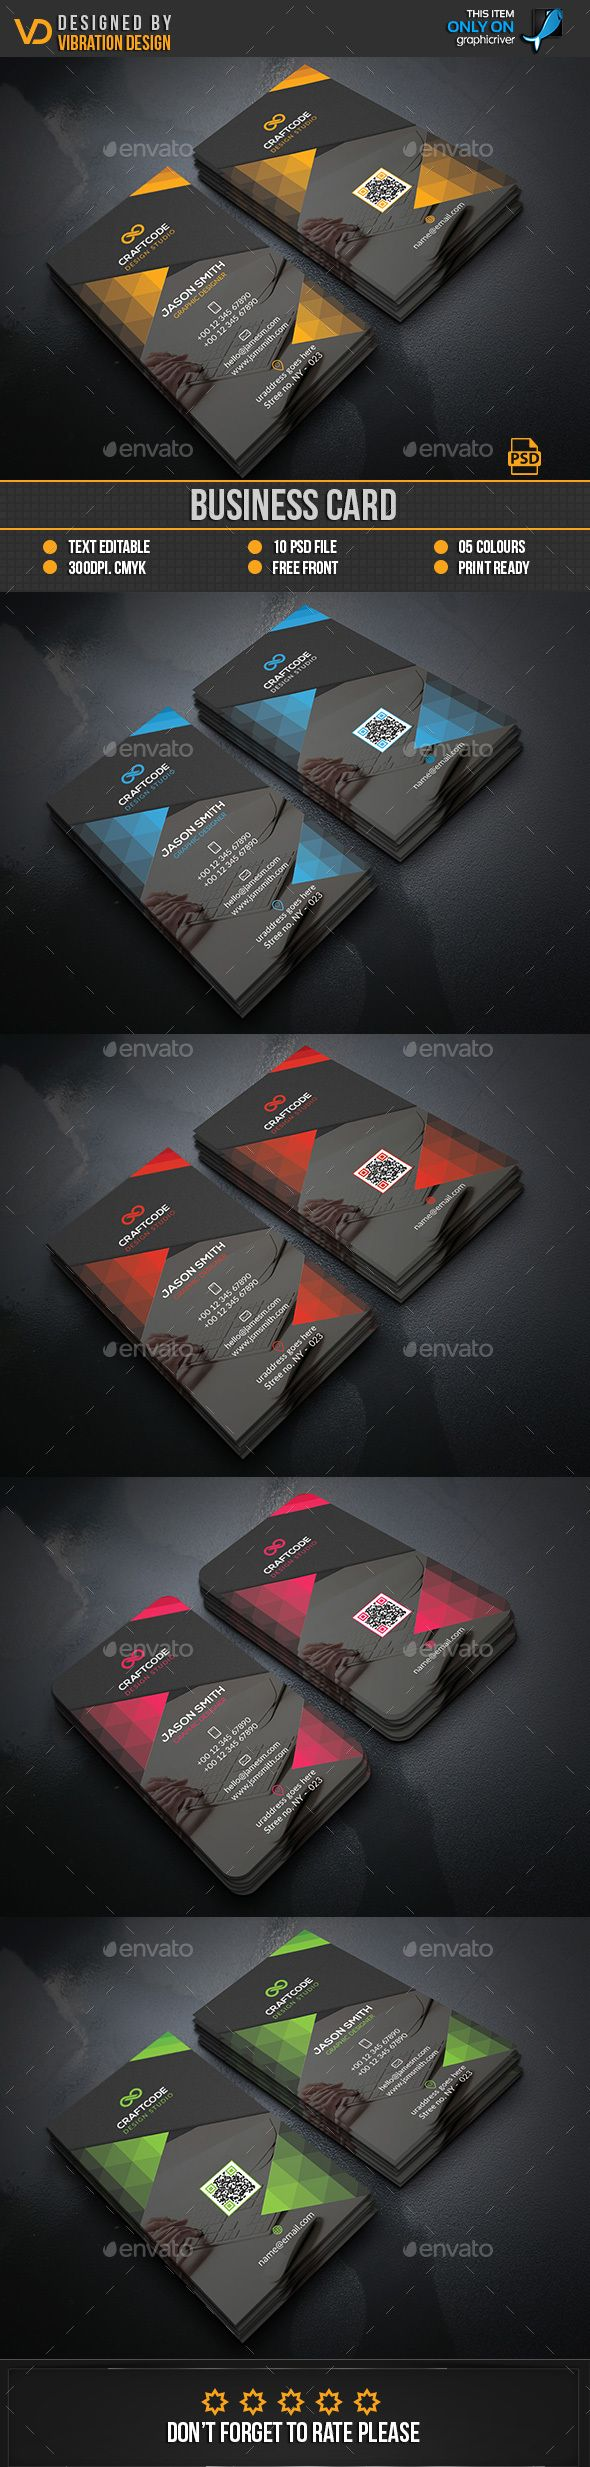 36 best Design Resources - Business Card Designs images on ...